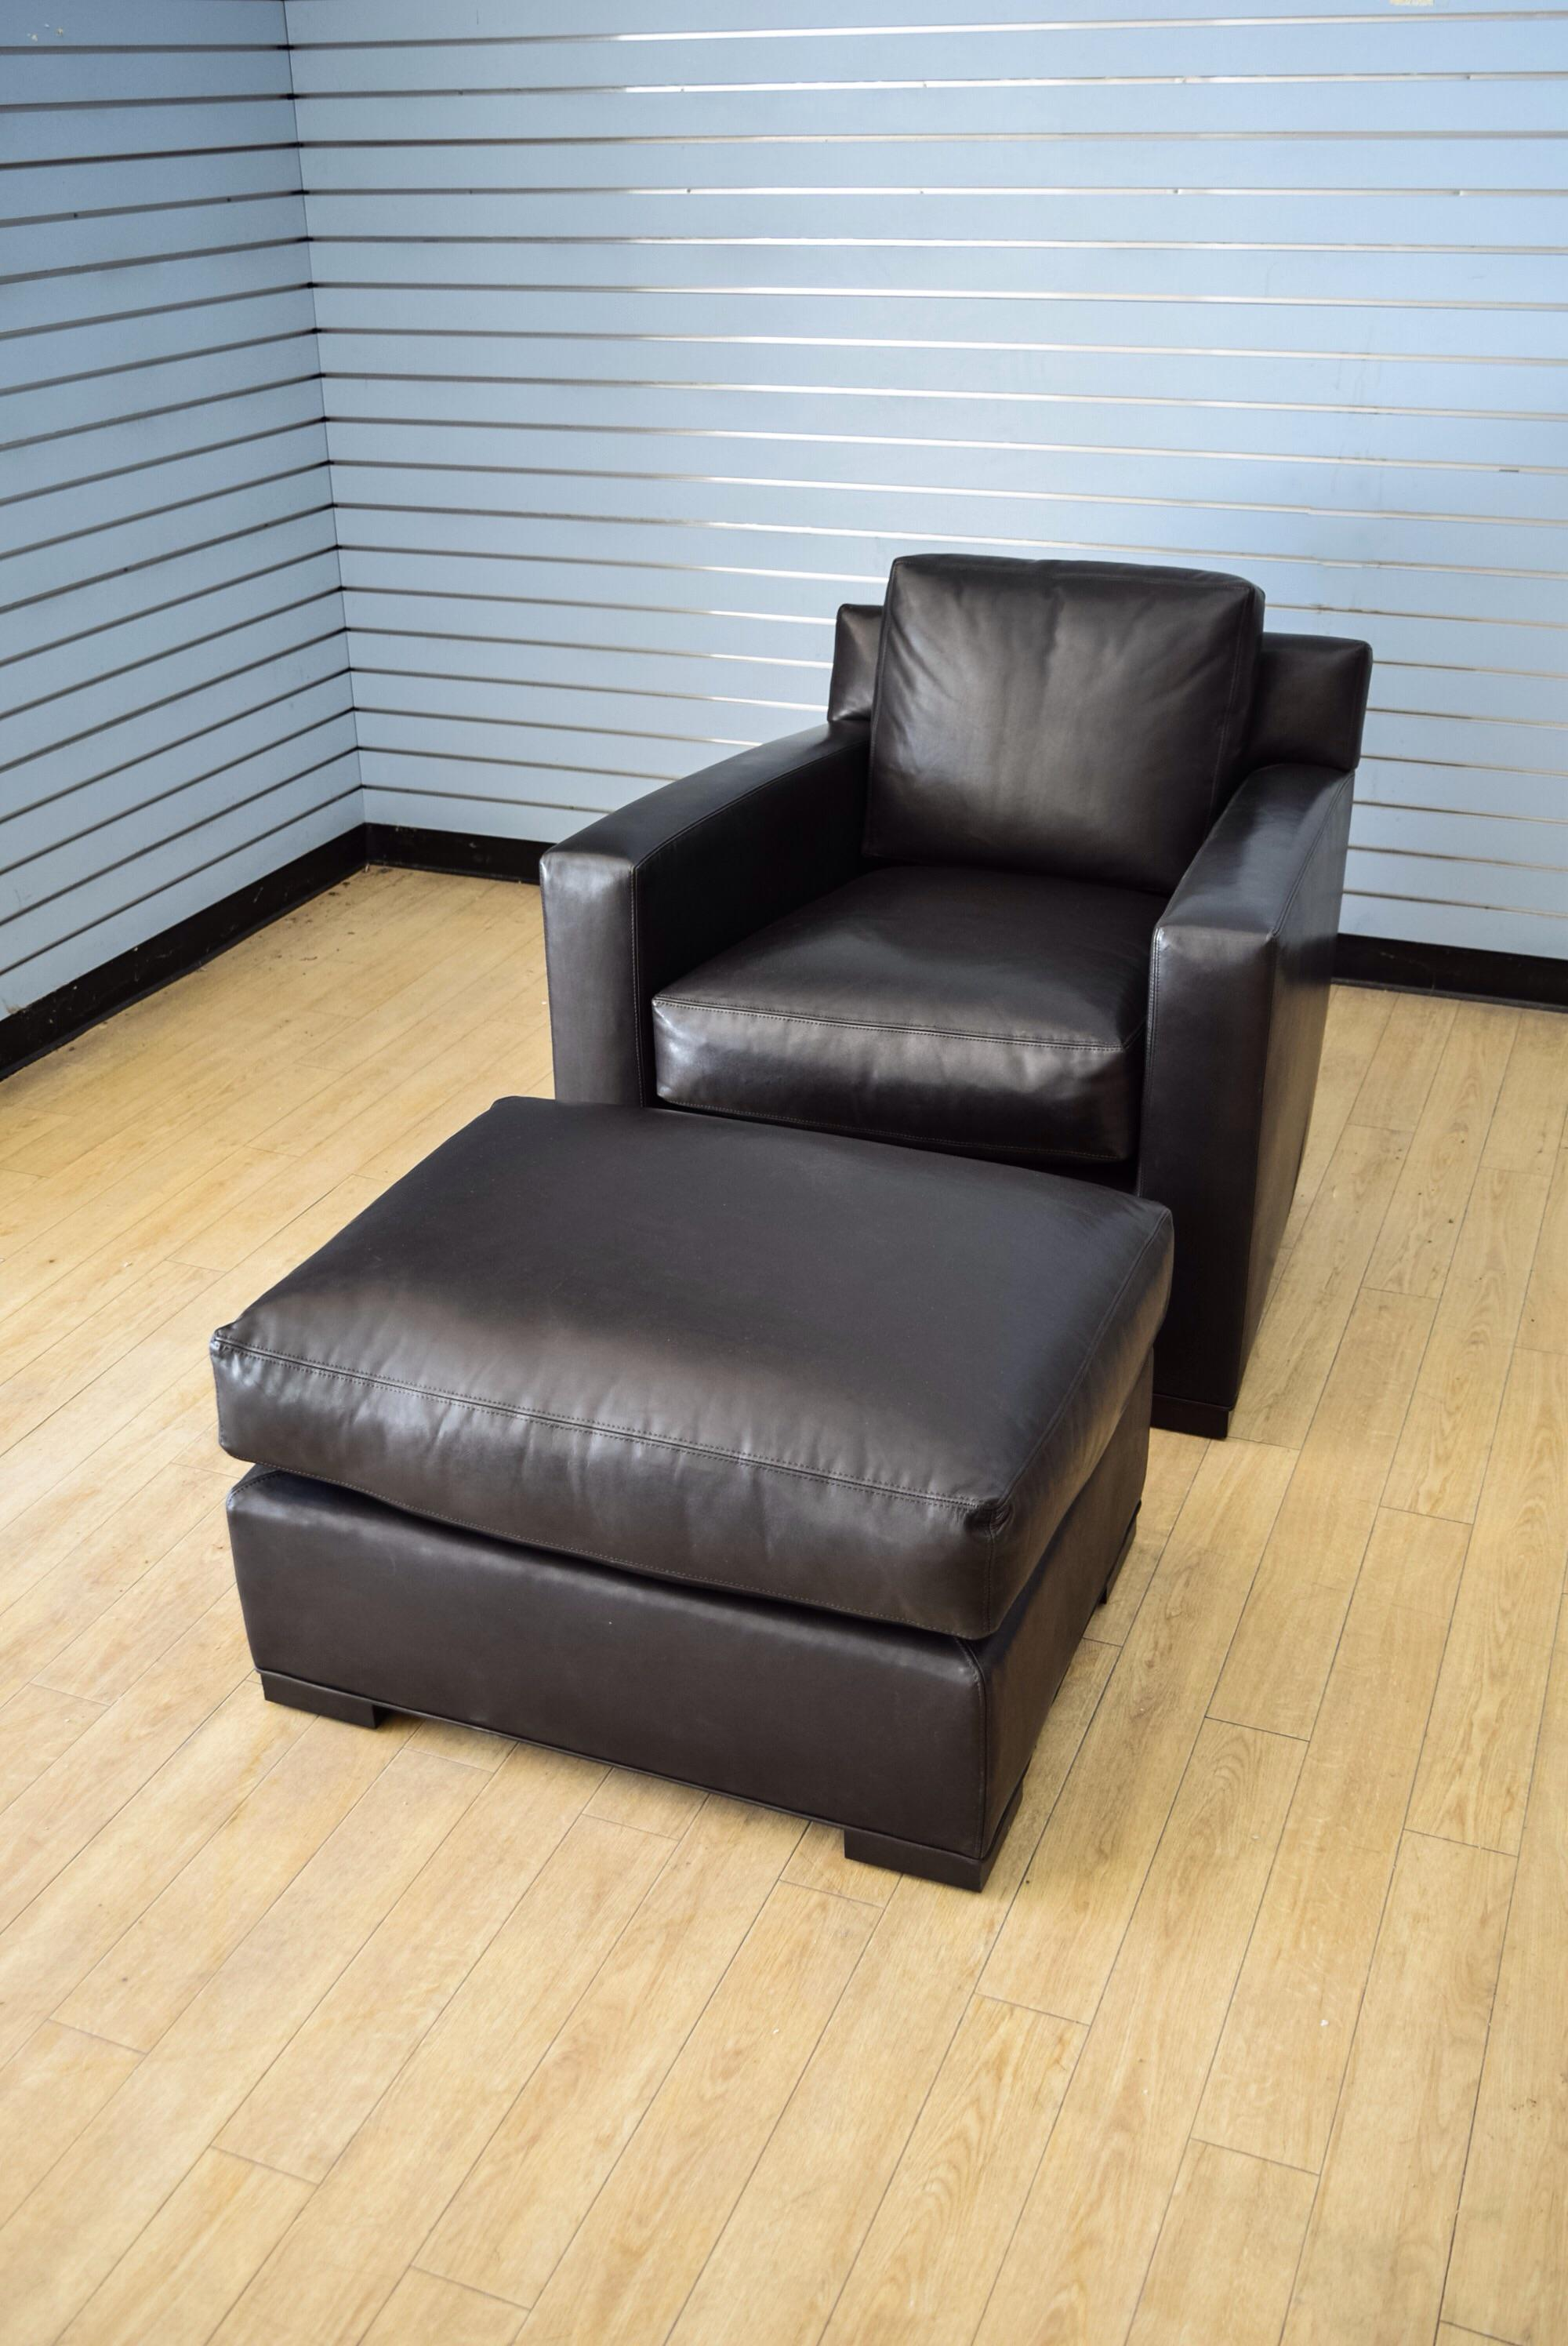 Coach Flatiron Black Leather Club Chair And Ottoman   Image 3 Of 11